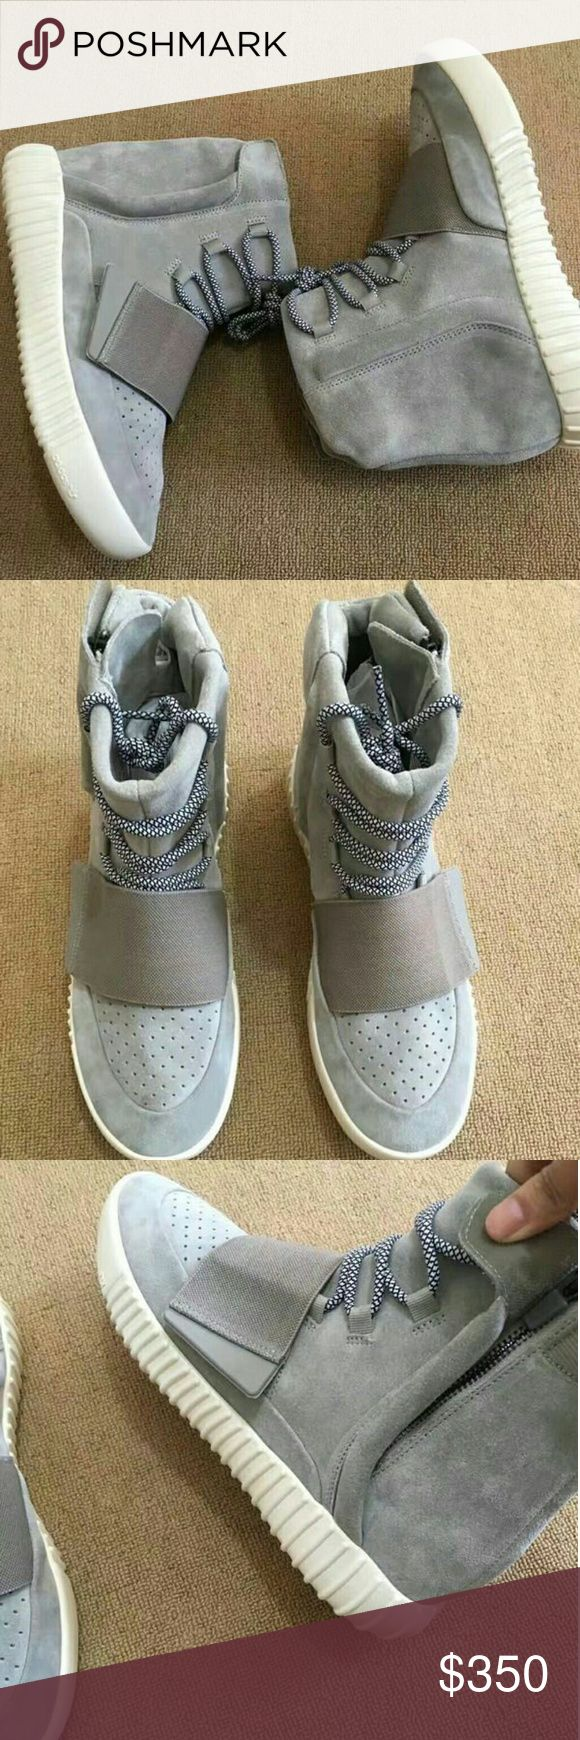 Yeezy 750 boost 7-12 Yeezy Shoes Athletic Shoes